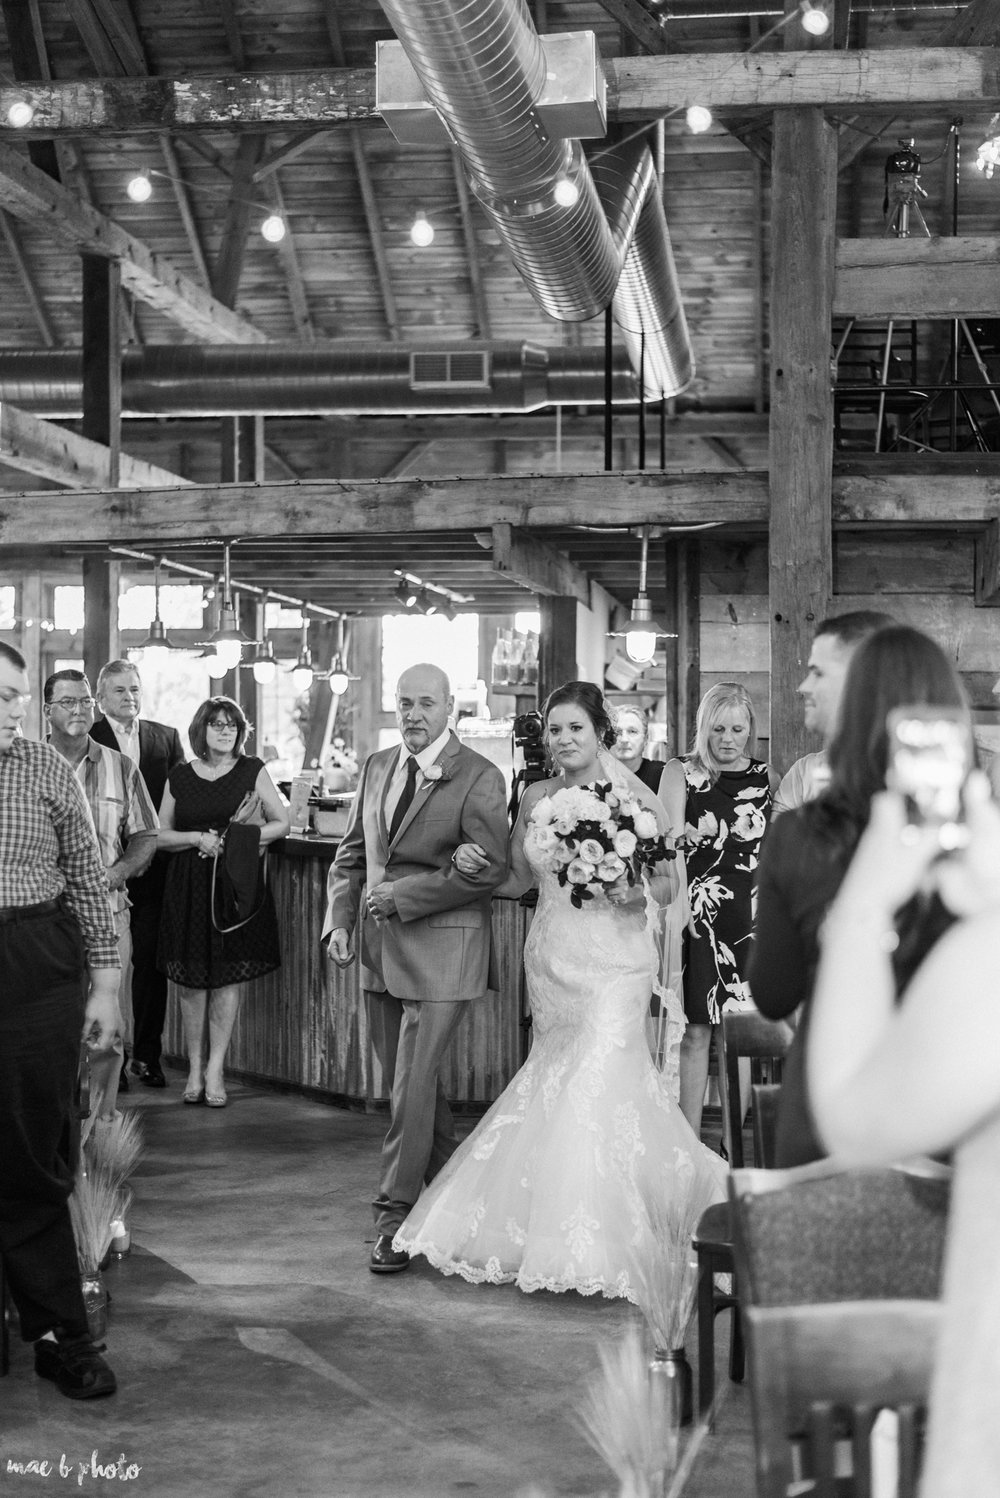 Sarah & Dustin's Rustic Chic Barn Wedding at Hartford Hill Winery in Hartford, Ohio by Mae B Photo-43.jpg